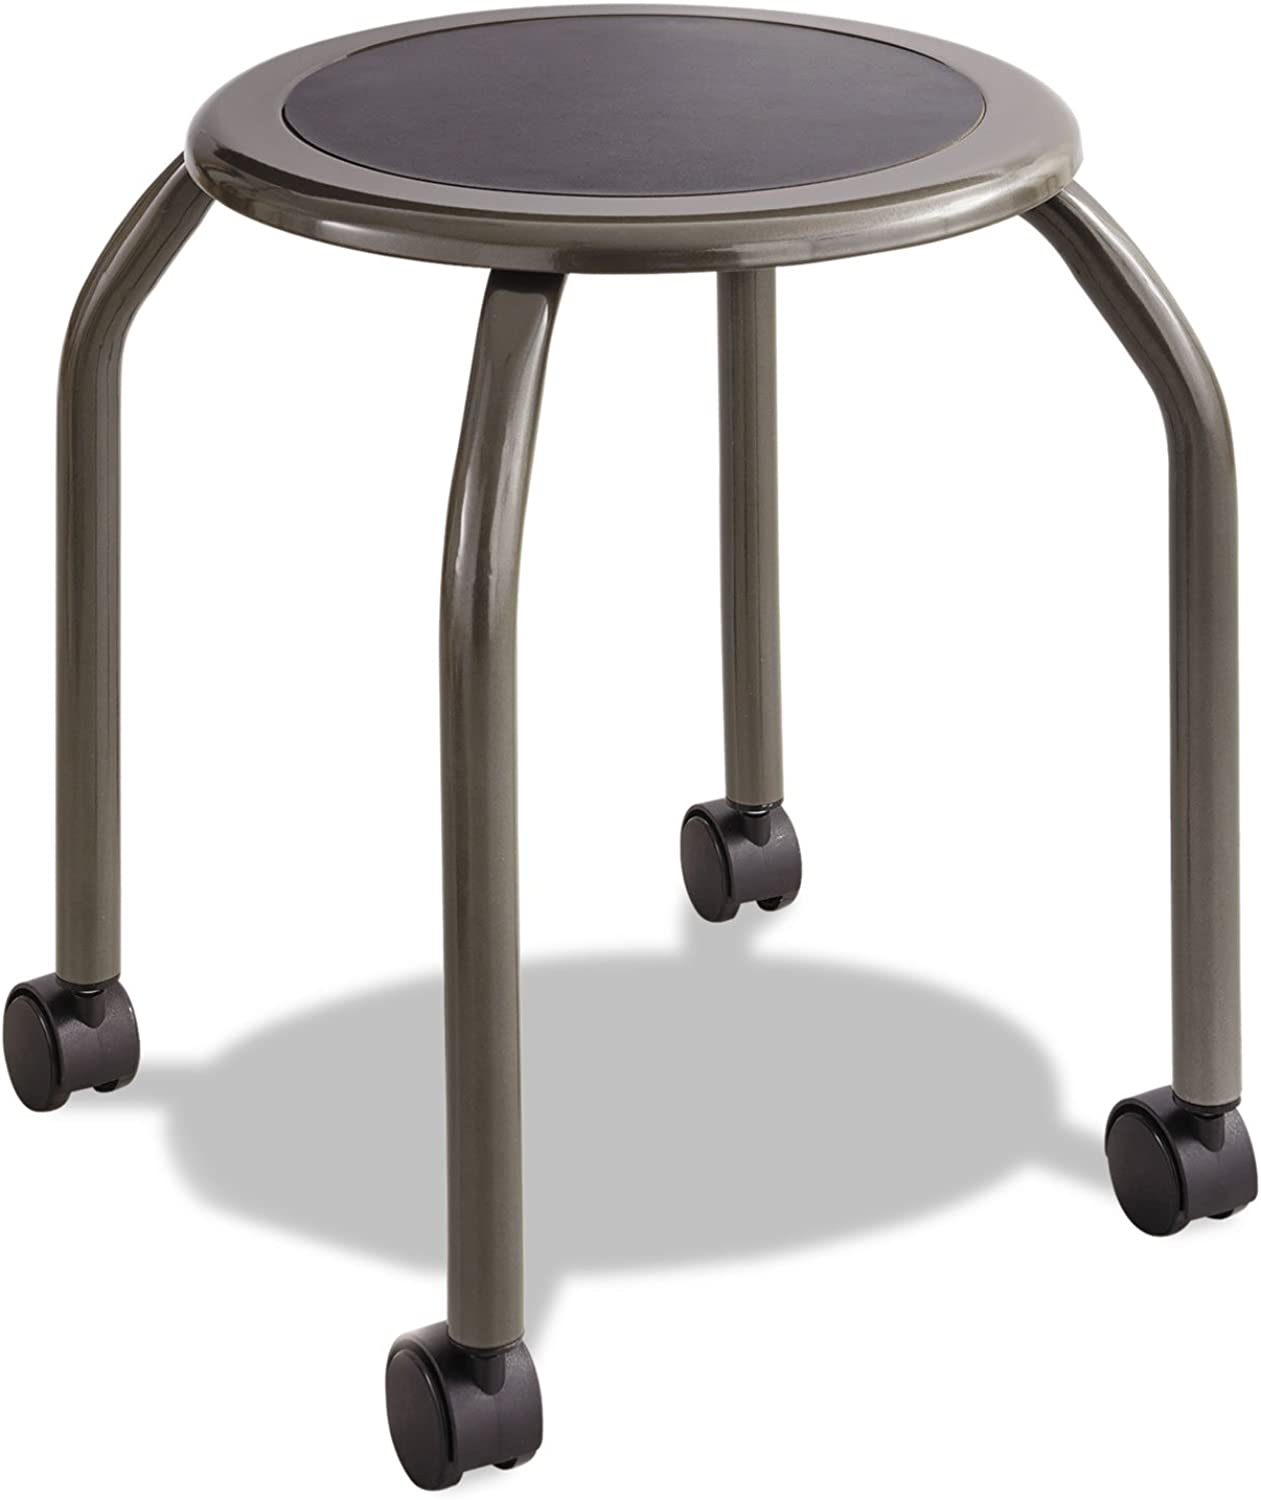 Safco Products Diesel Stool Trolley, Pewter